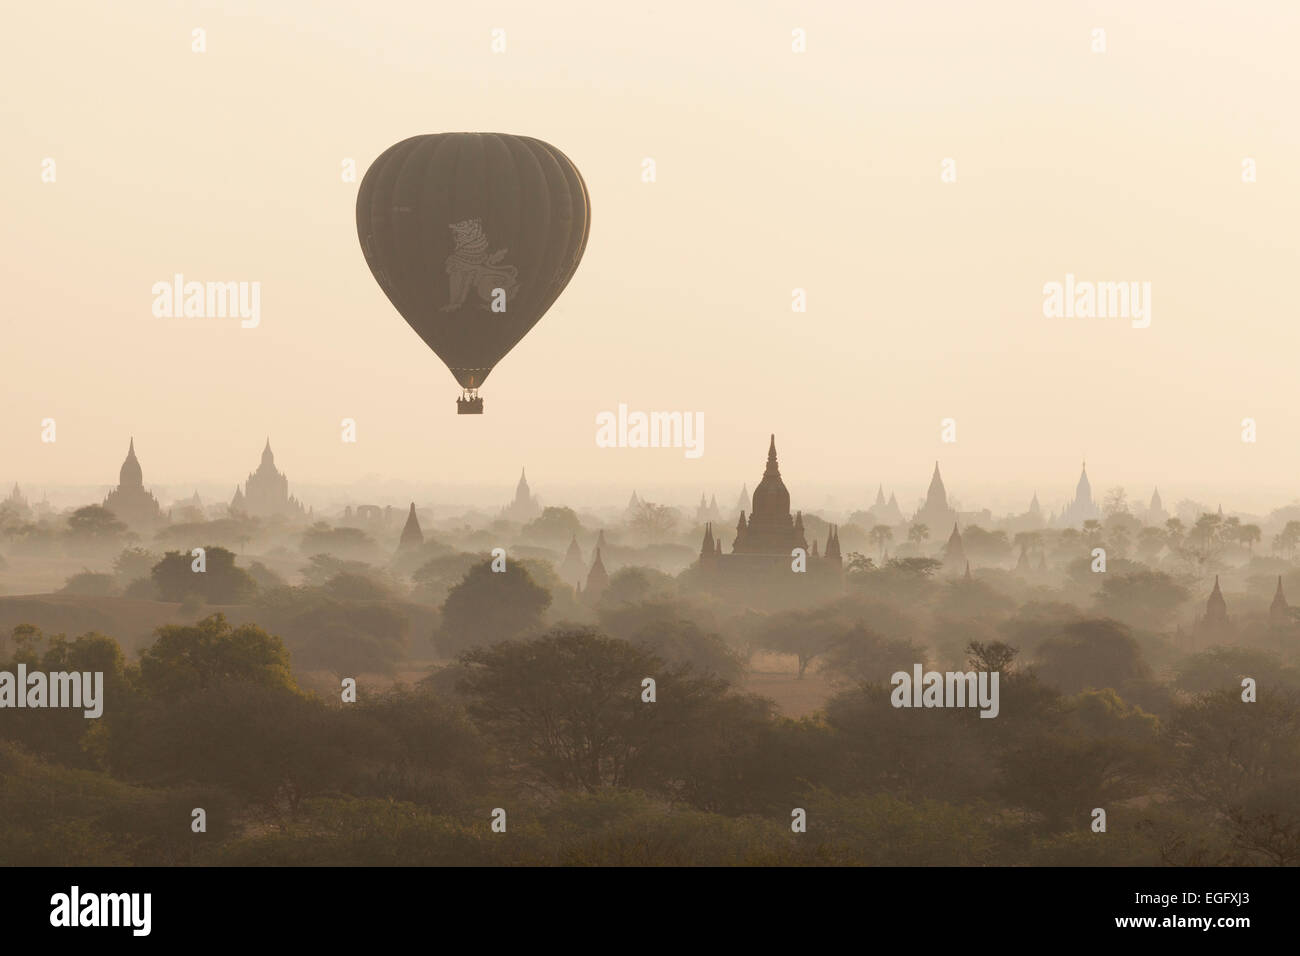 a-hot-air-balloon-over-the-temples-stupas-and-pagodas-on-the-bagan-EGFXJ3.jpg